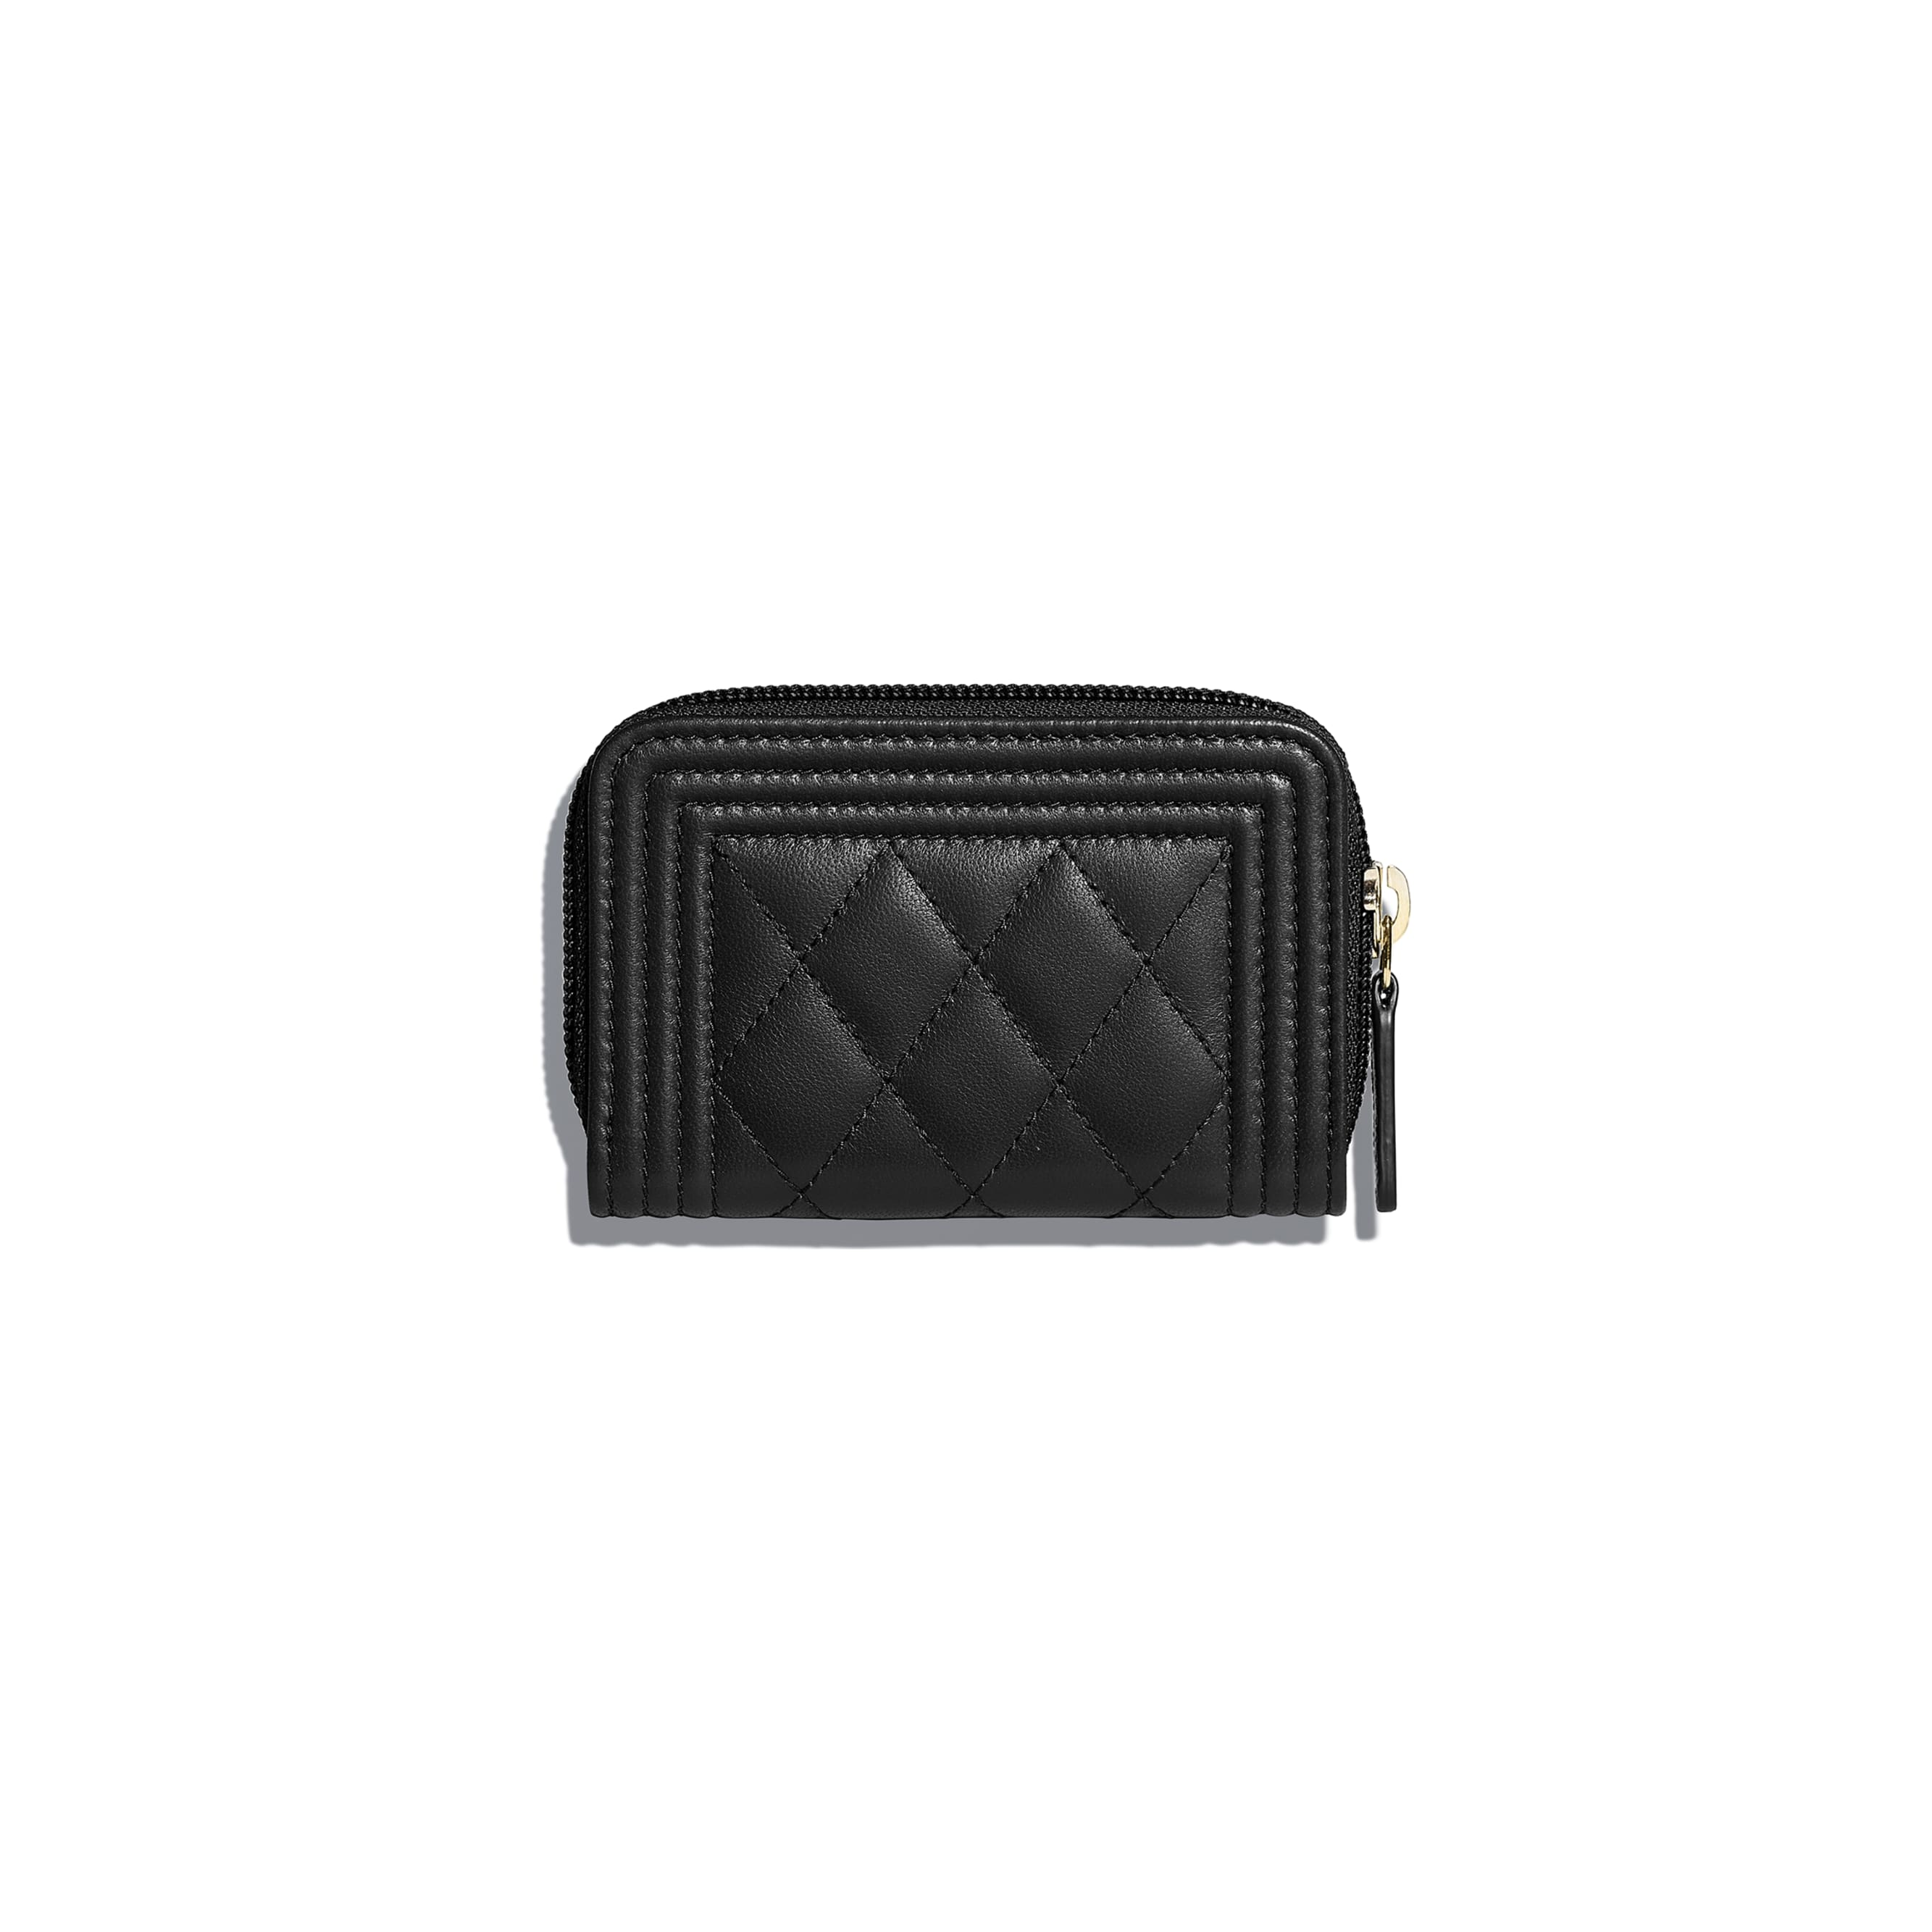 BOY CHANEL Zipped Coin Purse - Black - Lambskin & Gold-Tone Metal - CHANEL - Alternative view - see standard sized version